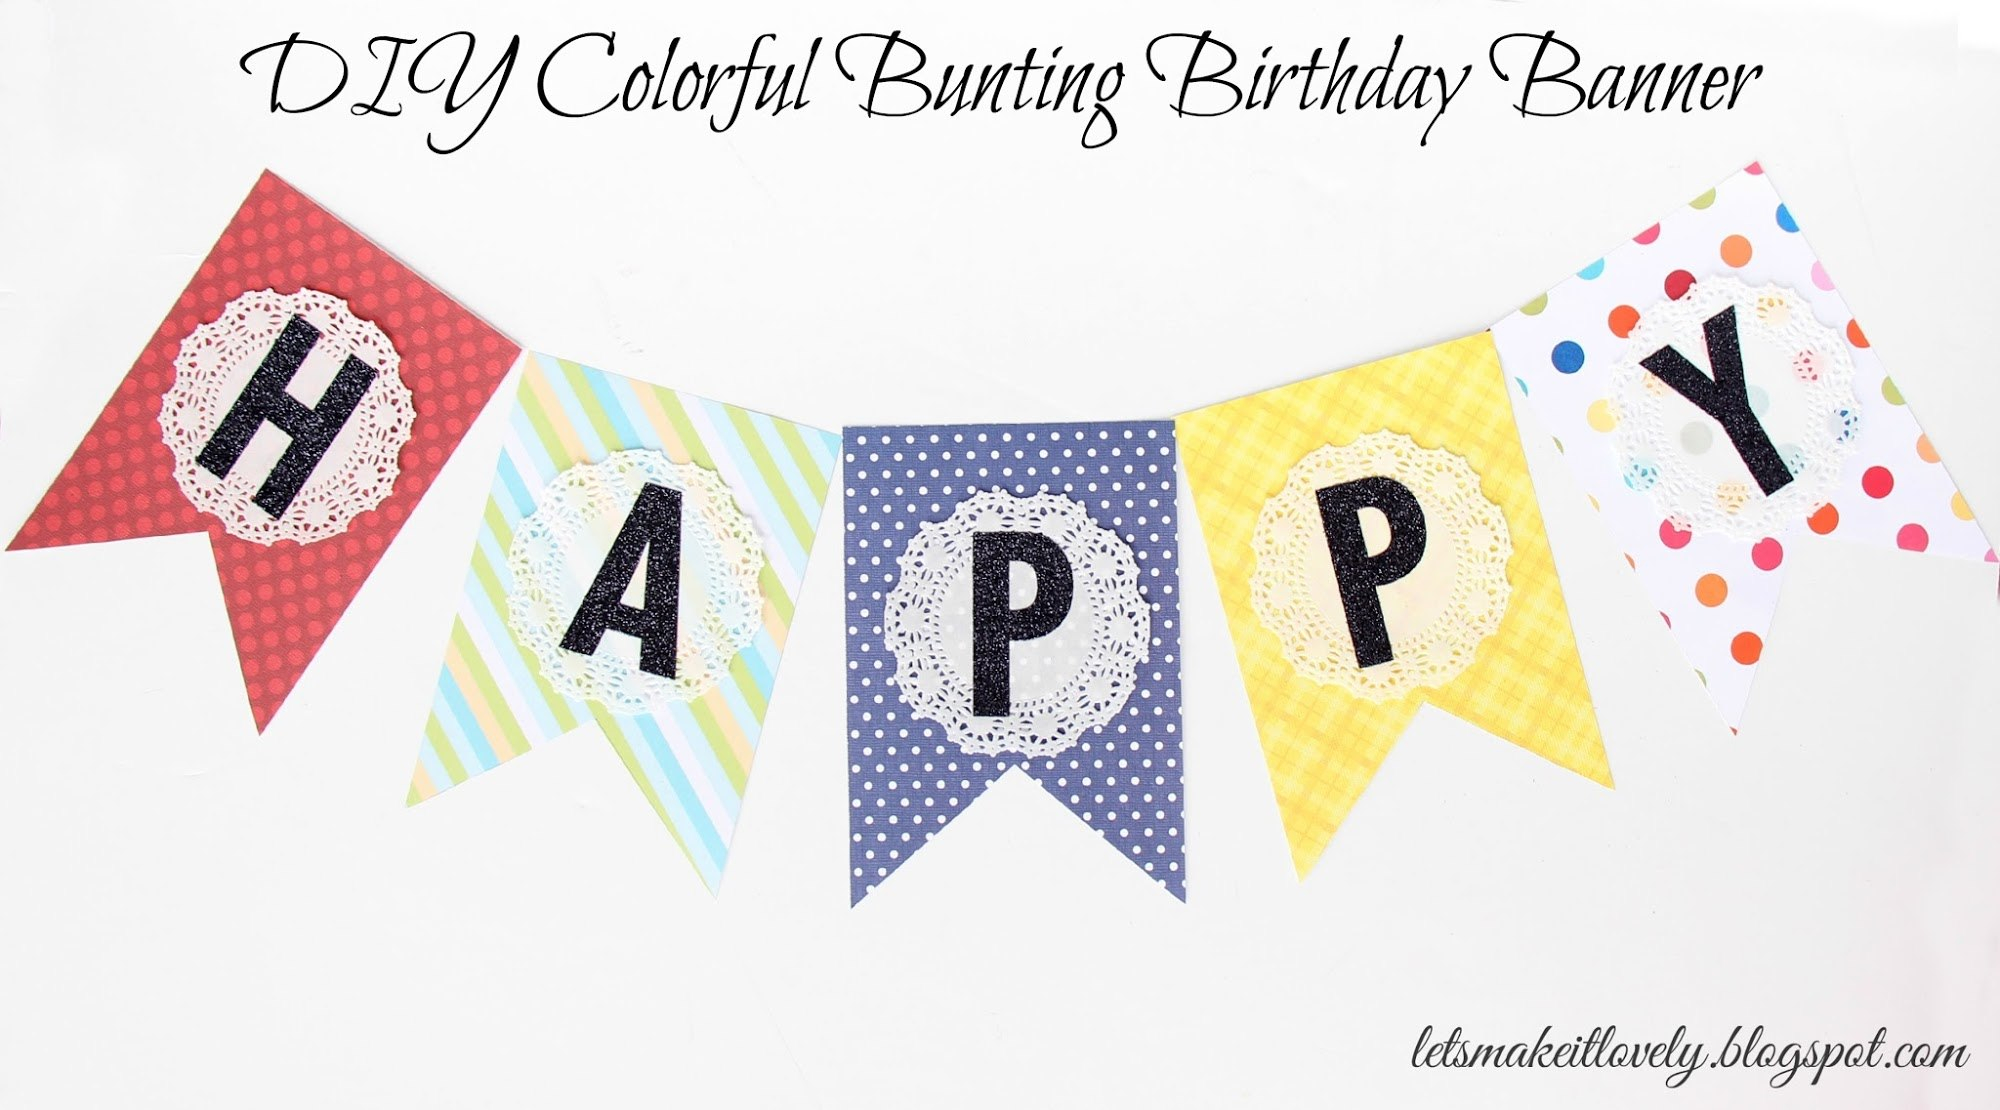 Let's Make It Lovely Diy Colorful Bunting Birthday Banner Inside Diy Birthday Banner Template